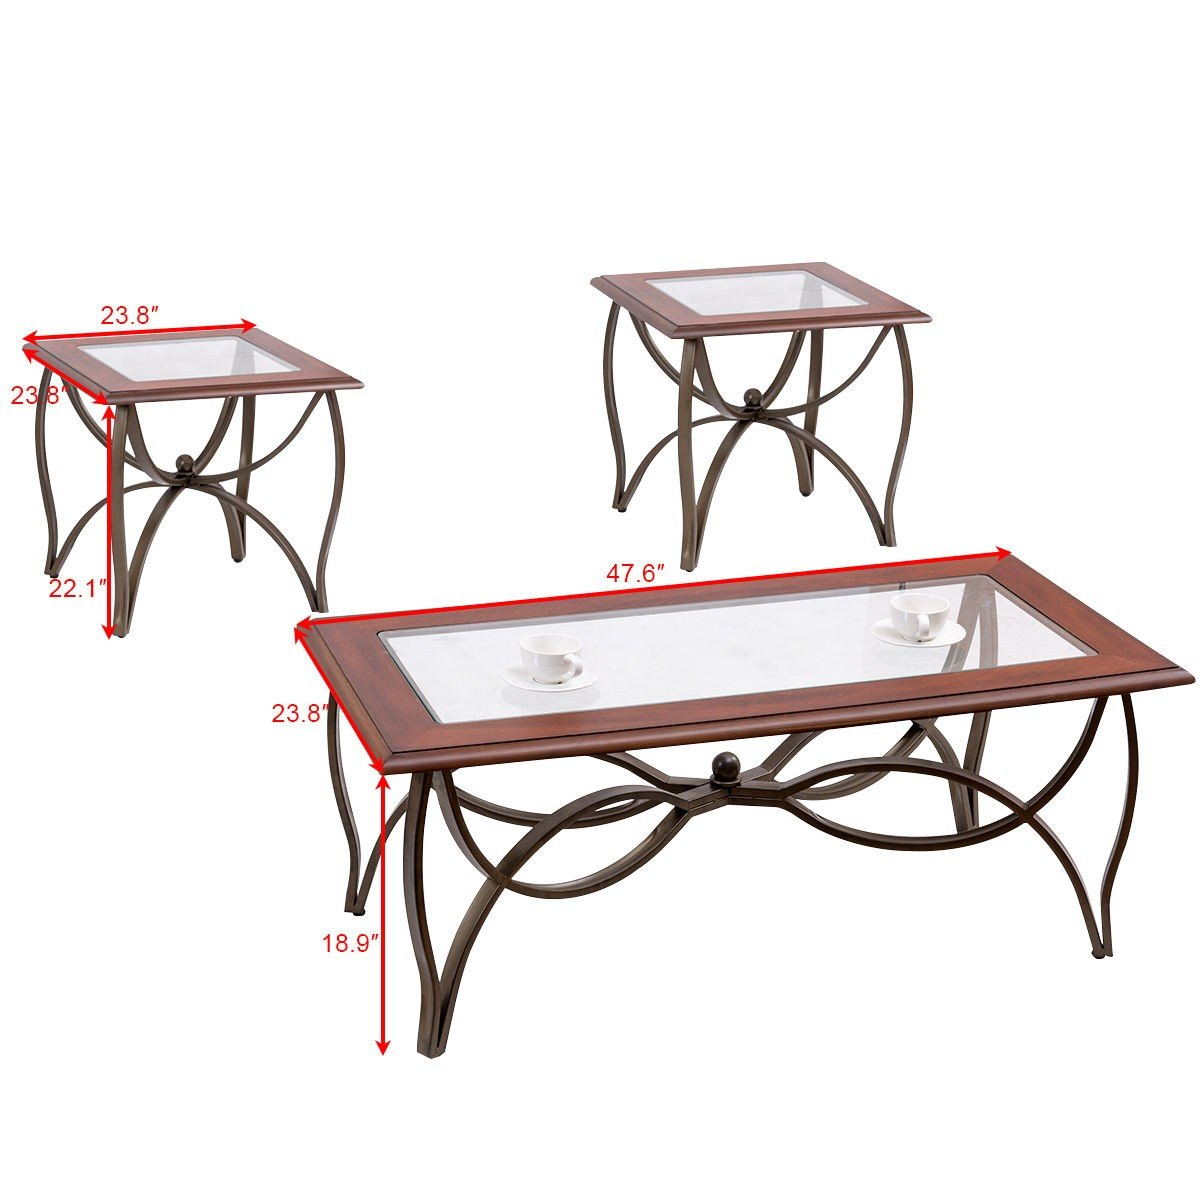 3 pcs elegant wood glass coffee table set by choice products Glass coffee table set